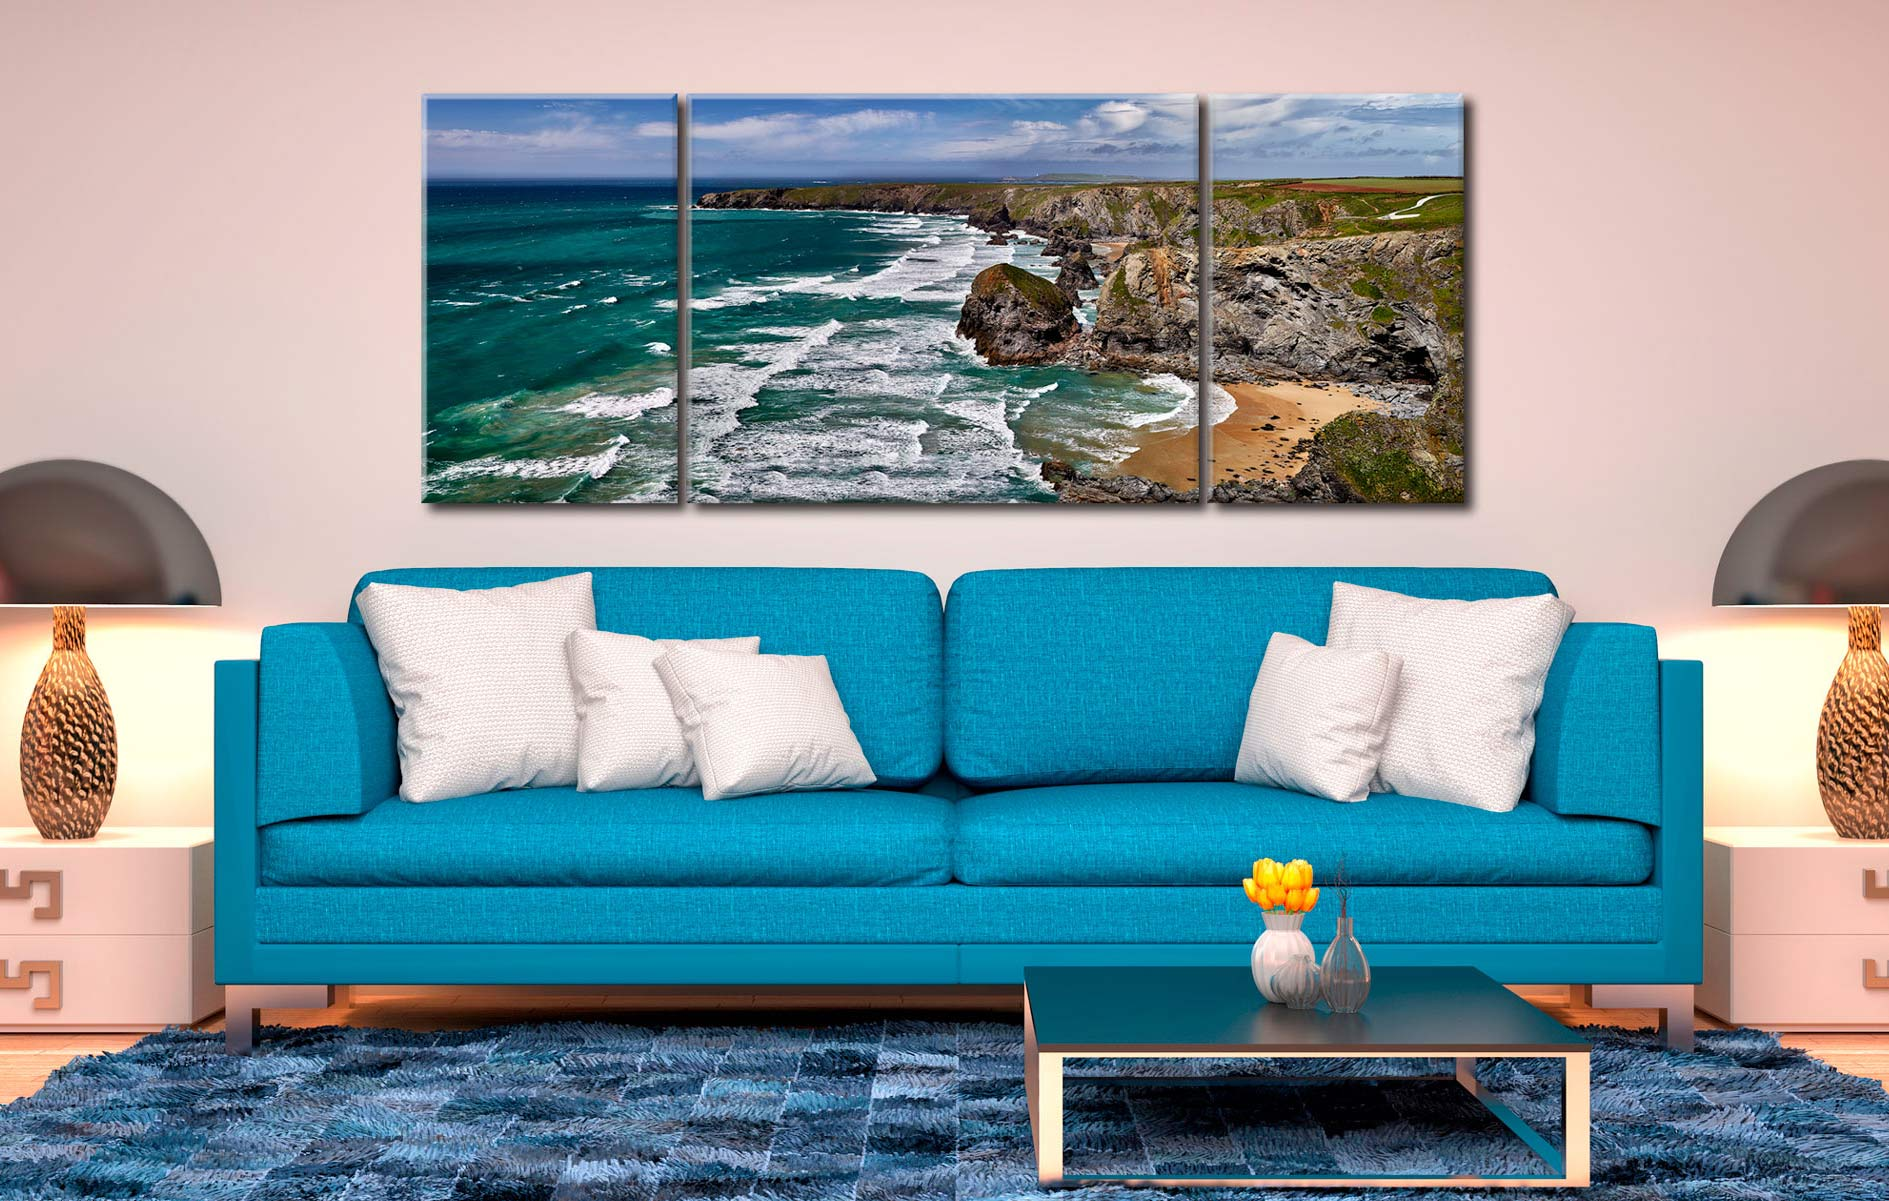 Summer Bedruthan Steps Panorama - 3 Panel Wide Mid Canvas on Wall